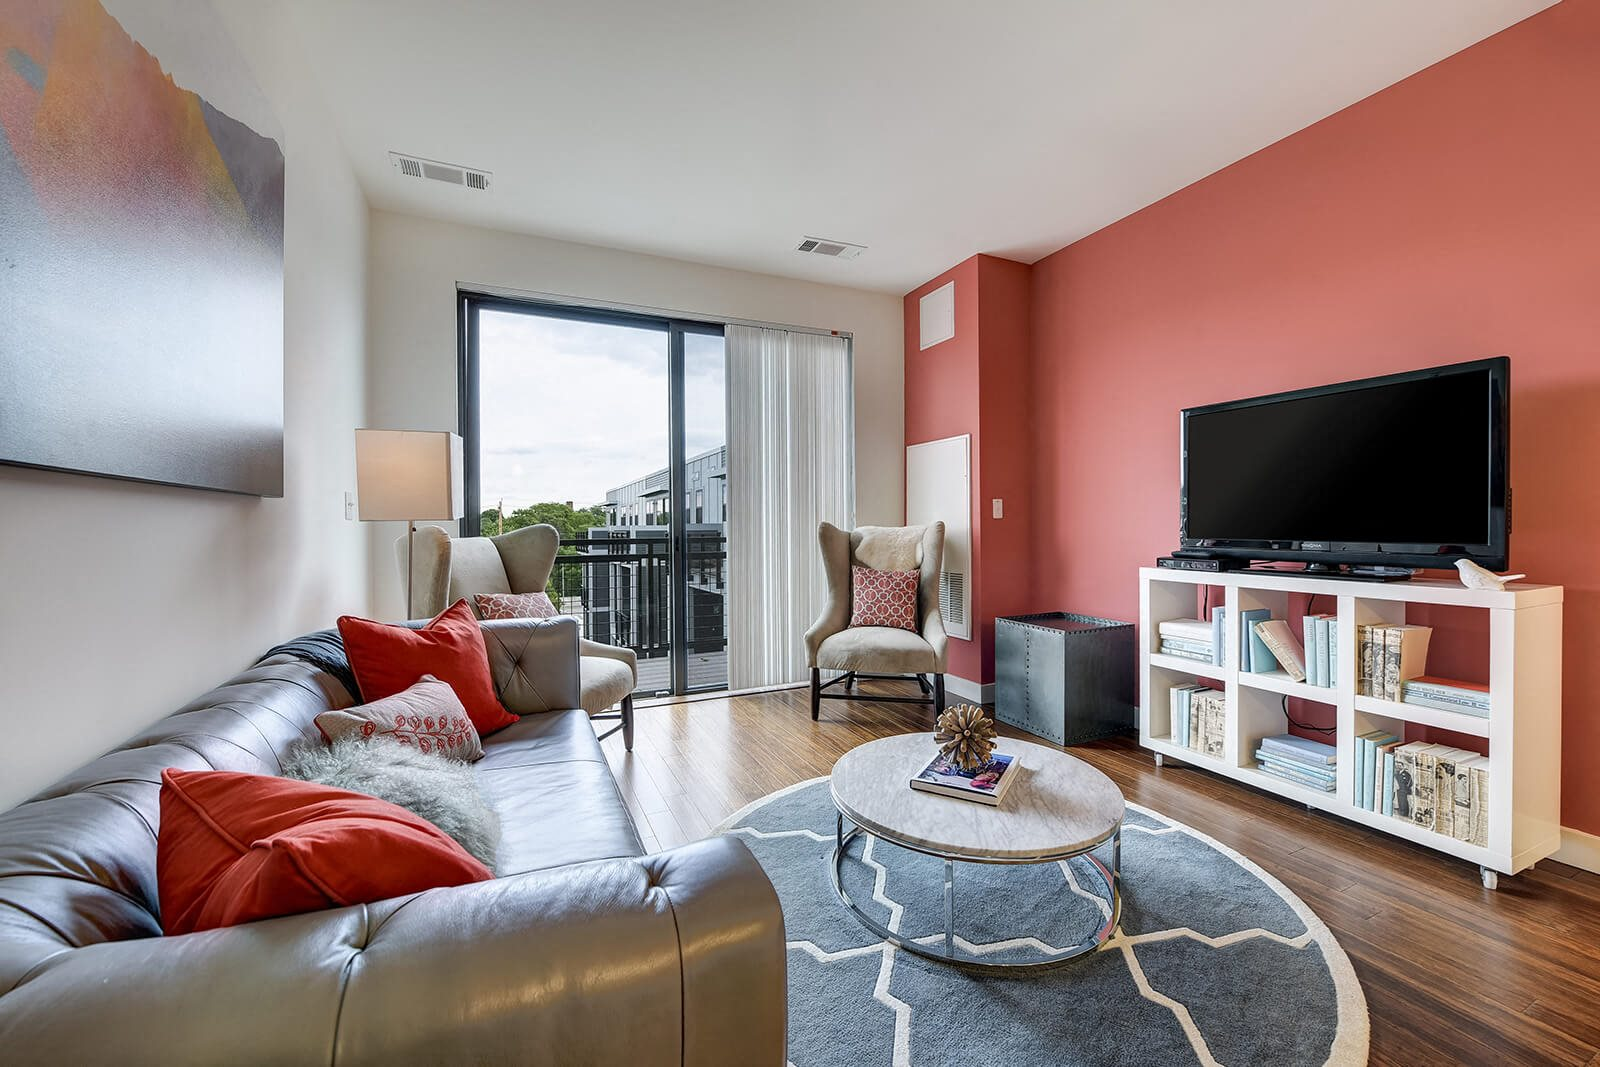 Comfortable Apartments Waiting for You at Windsor at Maxwells Green, Somerville, Massachusetts